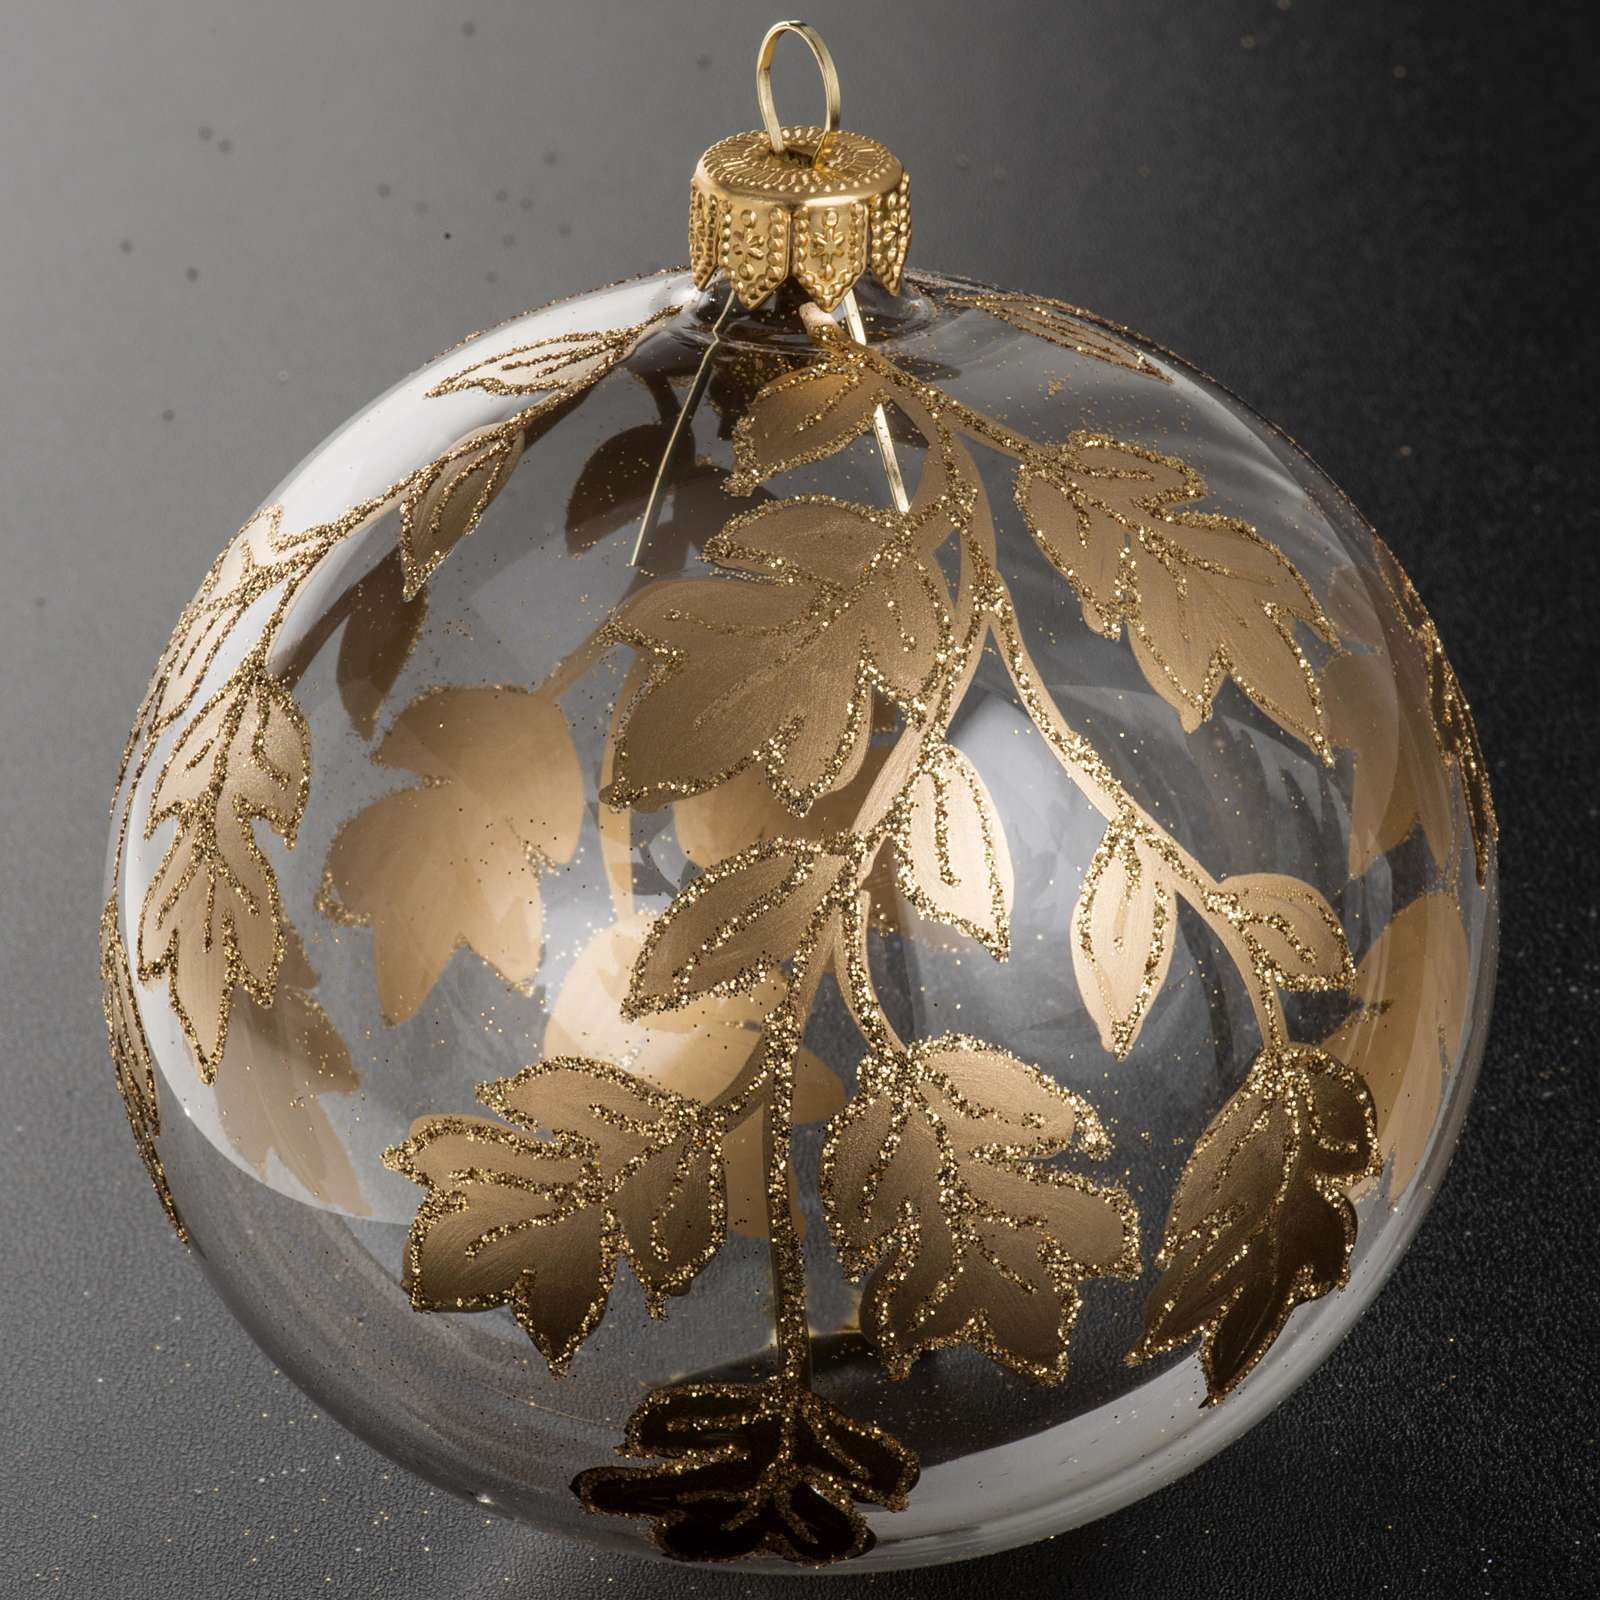 Christmas bauble, transparent glass with gold decorations 10cm 4